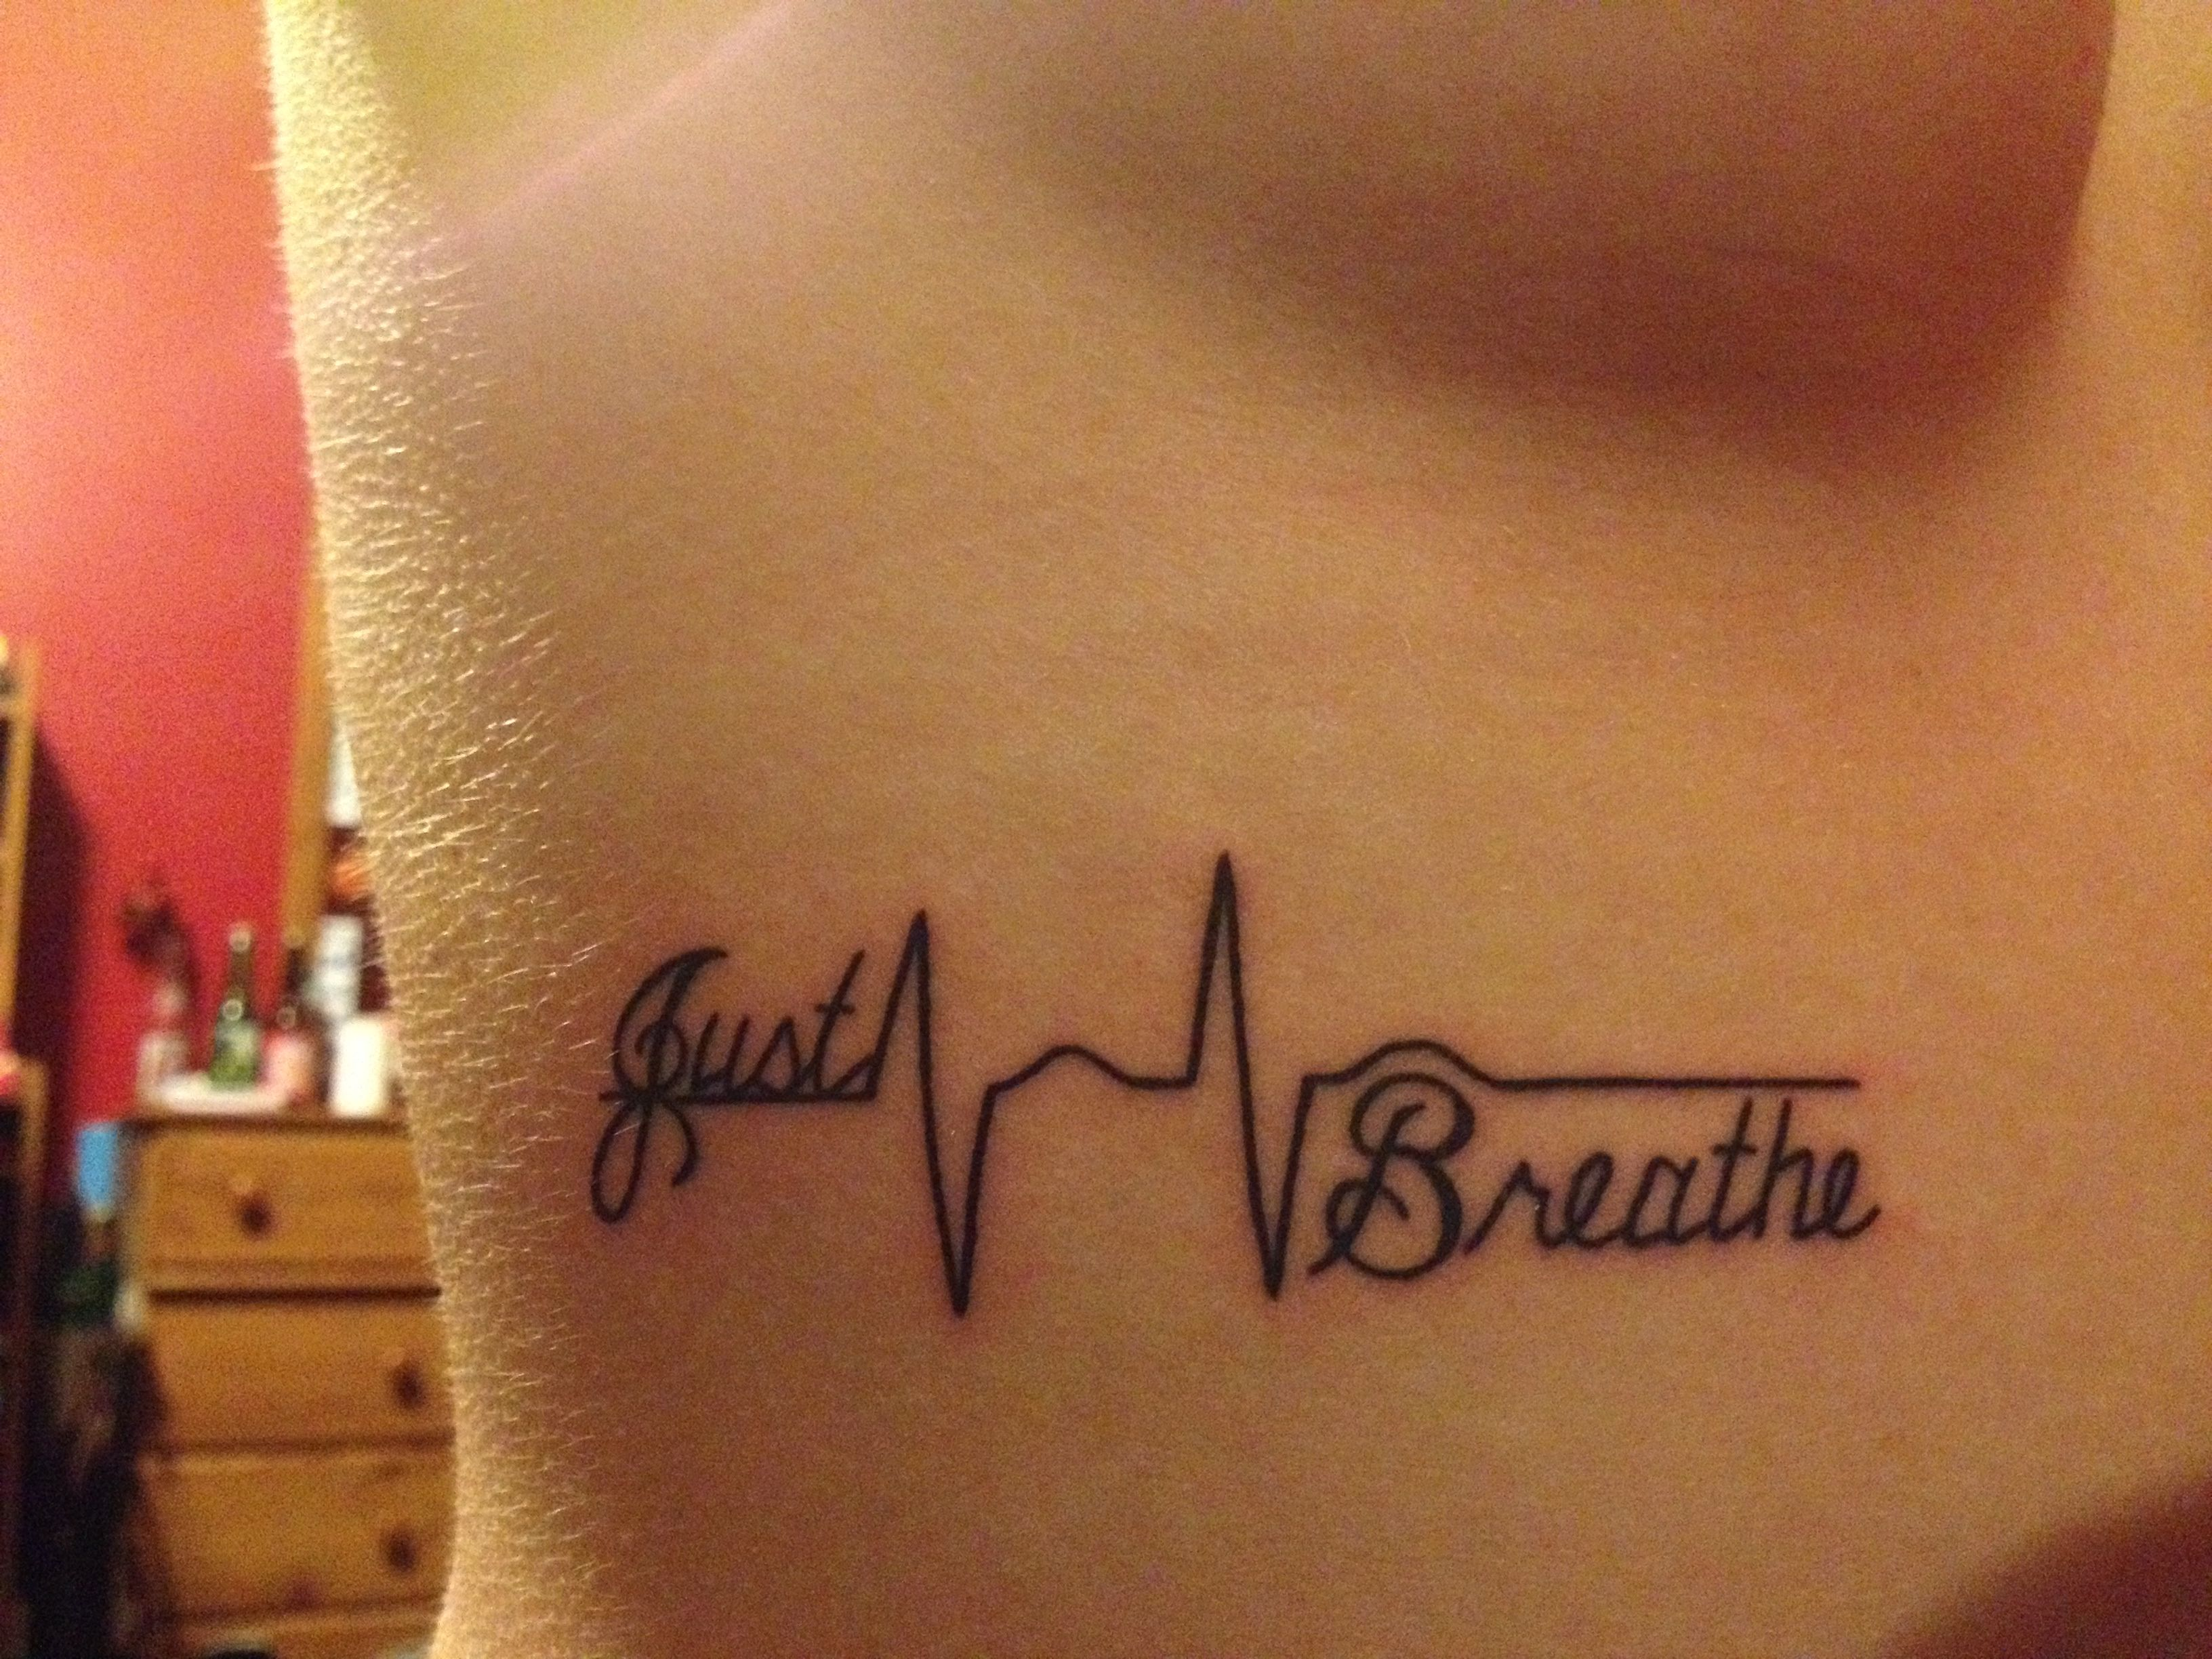 I like this tattoo, I would want mine to say just breathe in between ...